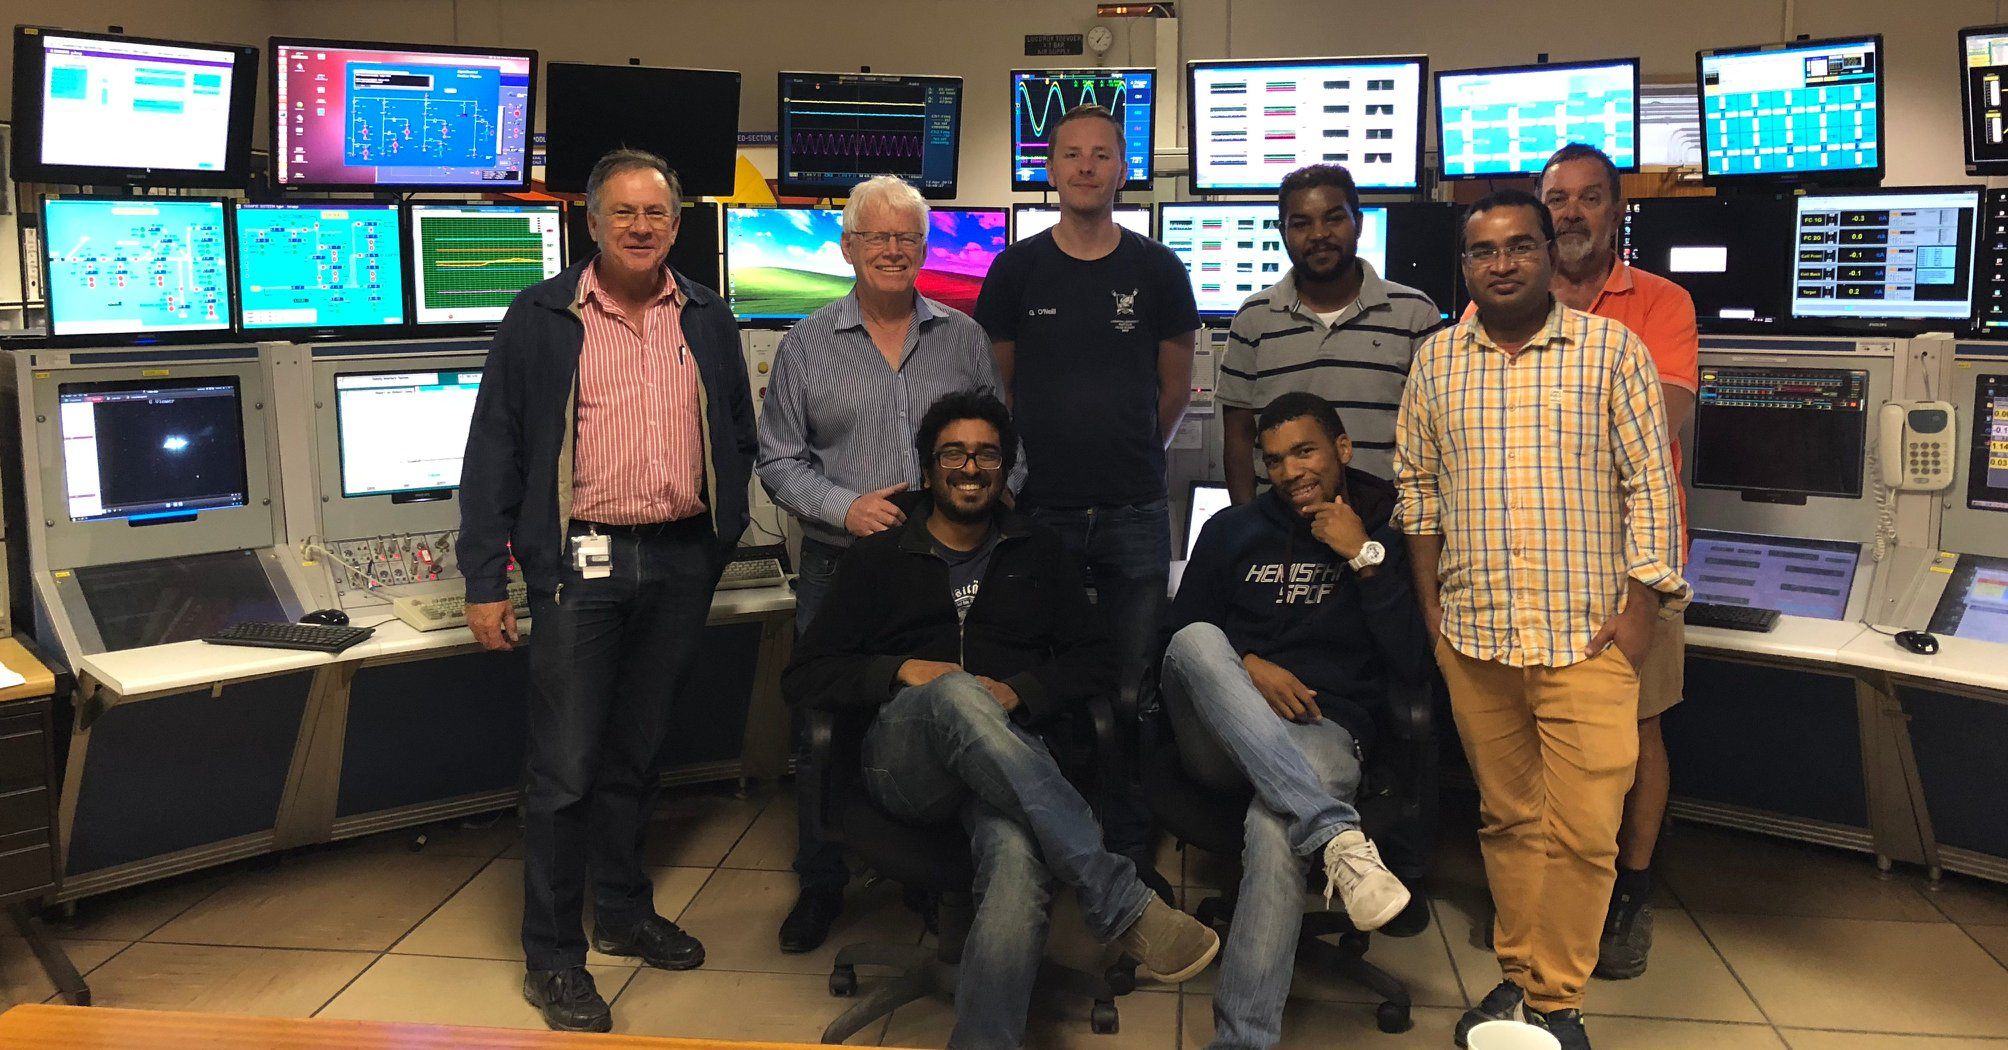 New Beamline for Nuclear Lifetime Measurements at iThemba LABS